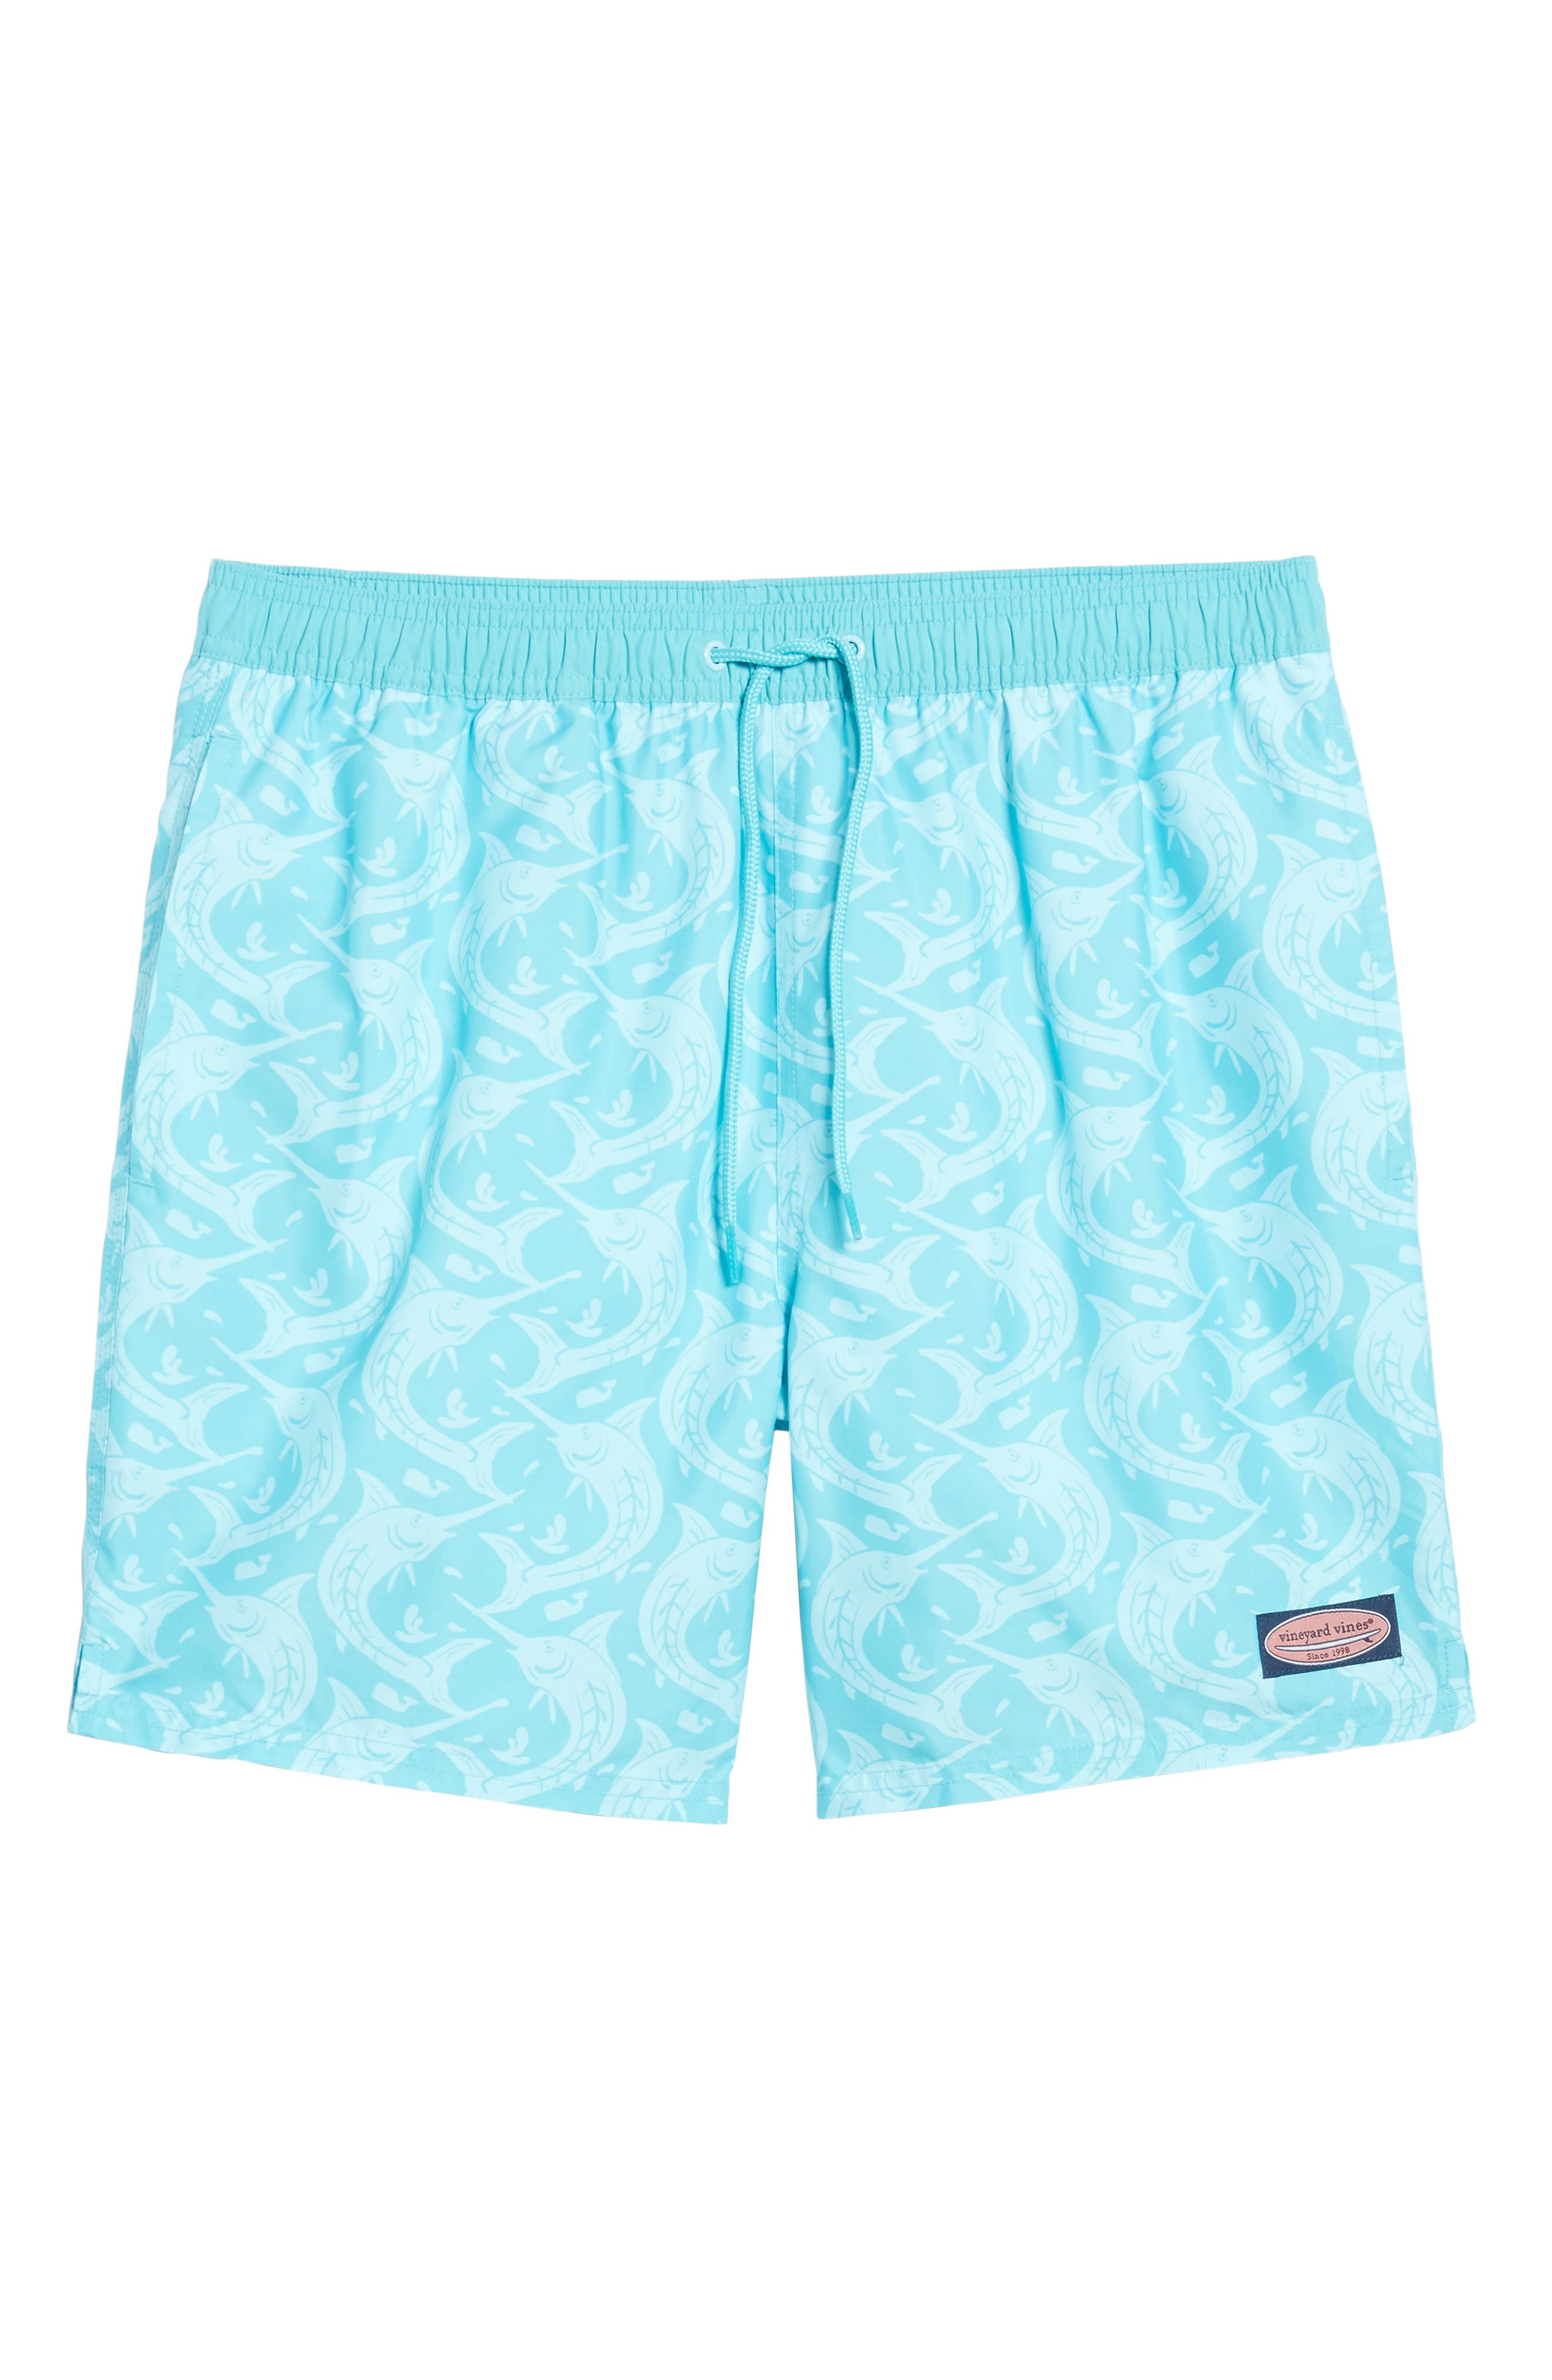 Marlin Out of Water Chappy Swim Trunks,                             Alternate thumbnail 6, color,                             459